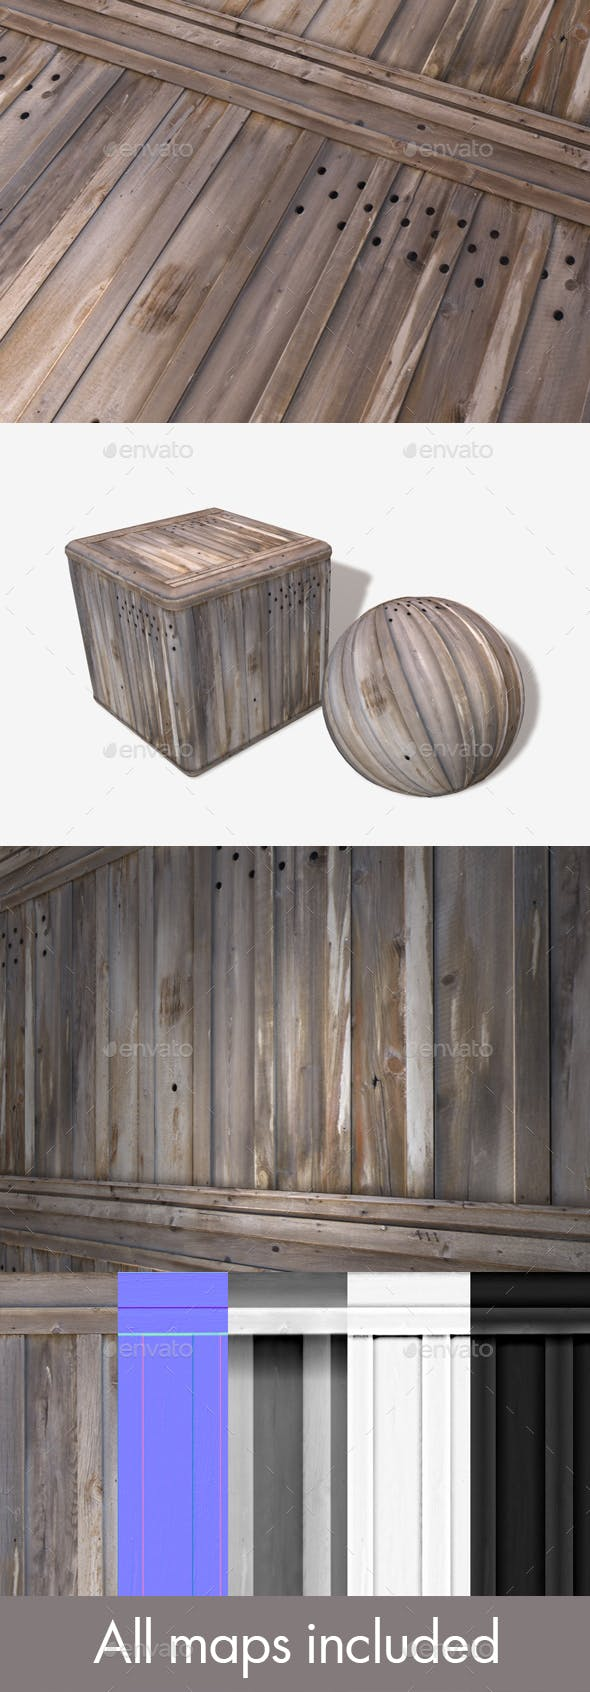 Scrap Wooden Planks Seamless Texture - 3DOcean Item for Sale